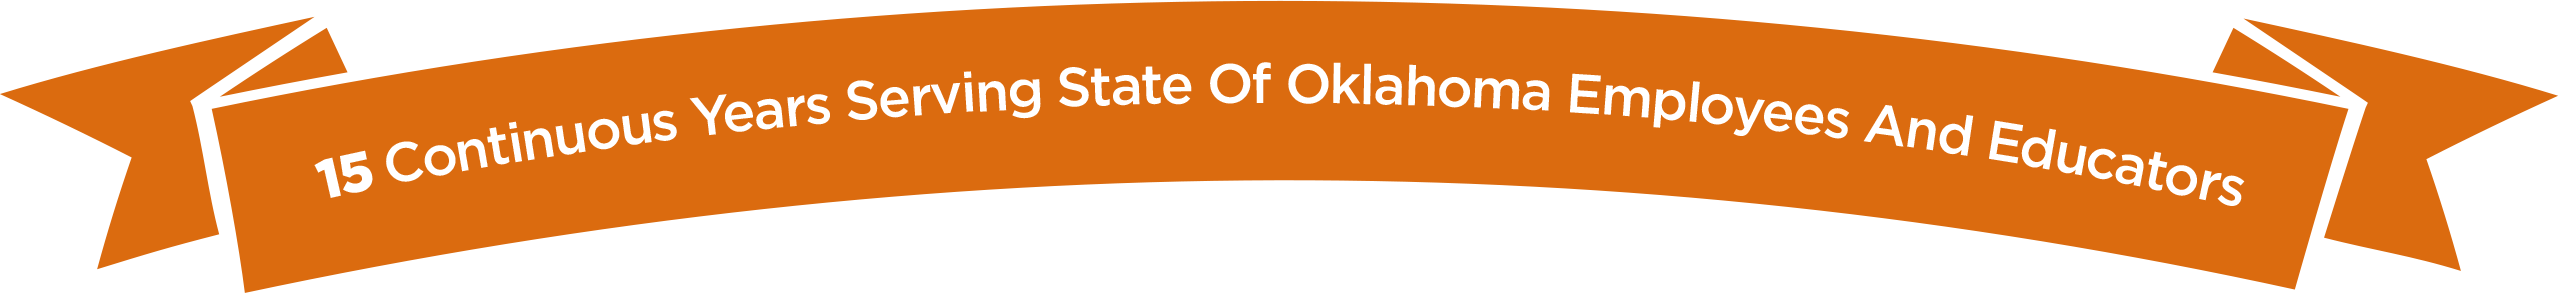 15 Continuous Years Serving State of Oklahoma Employees and Educators